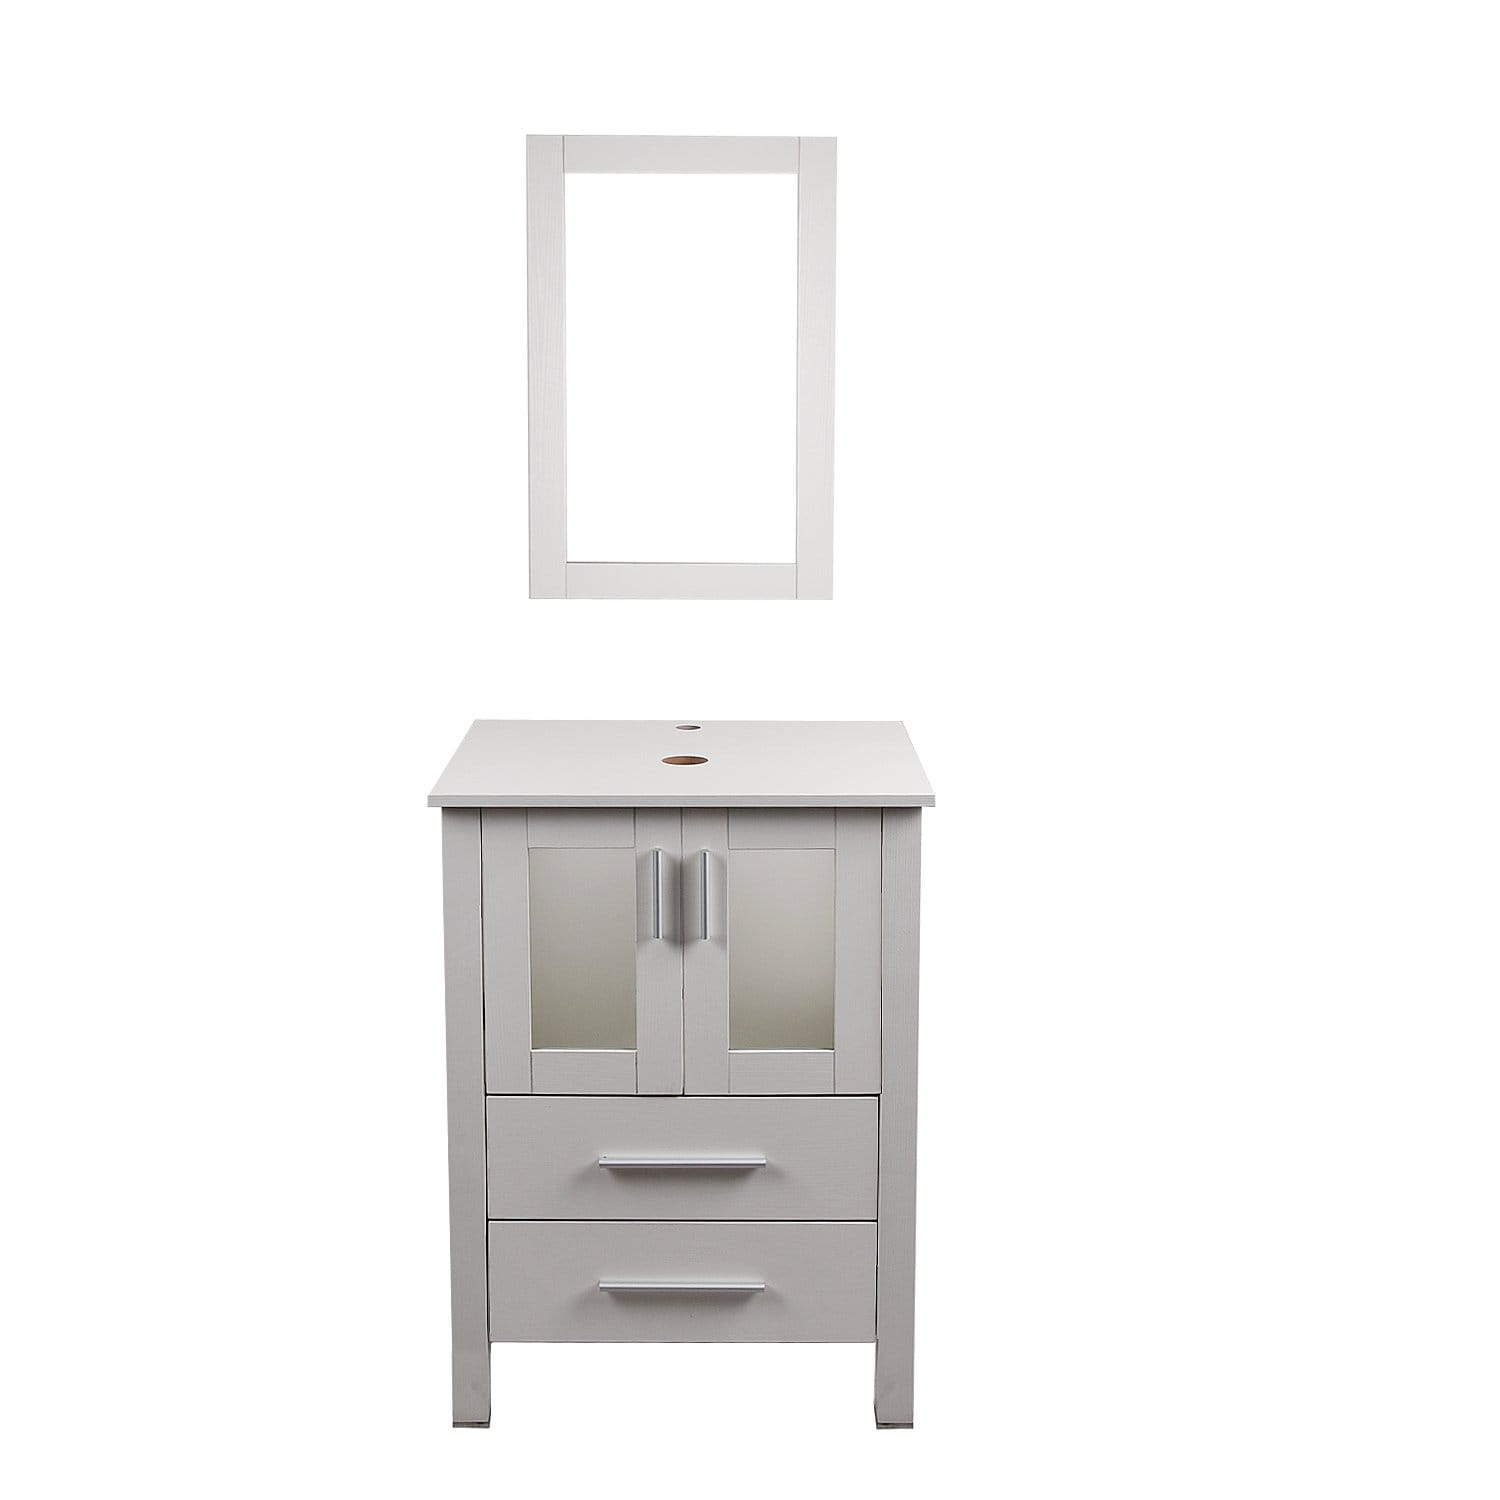 PULUOMIS  White Double-door And Double-drawer Vanity Set, Waterproof Classic Mirror,Modern and Stylish Design